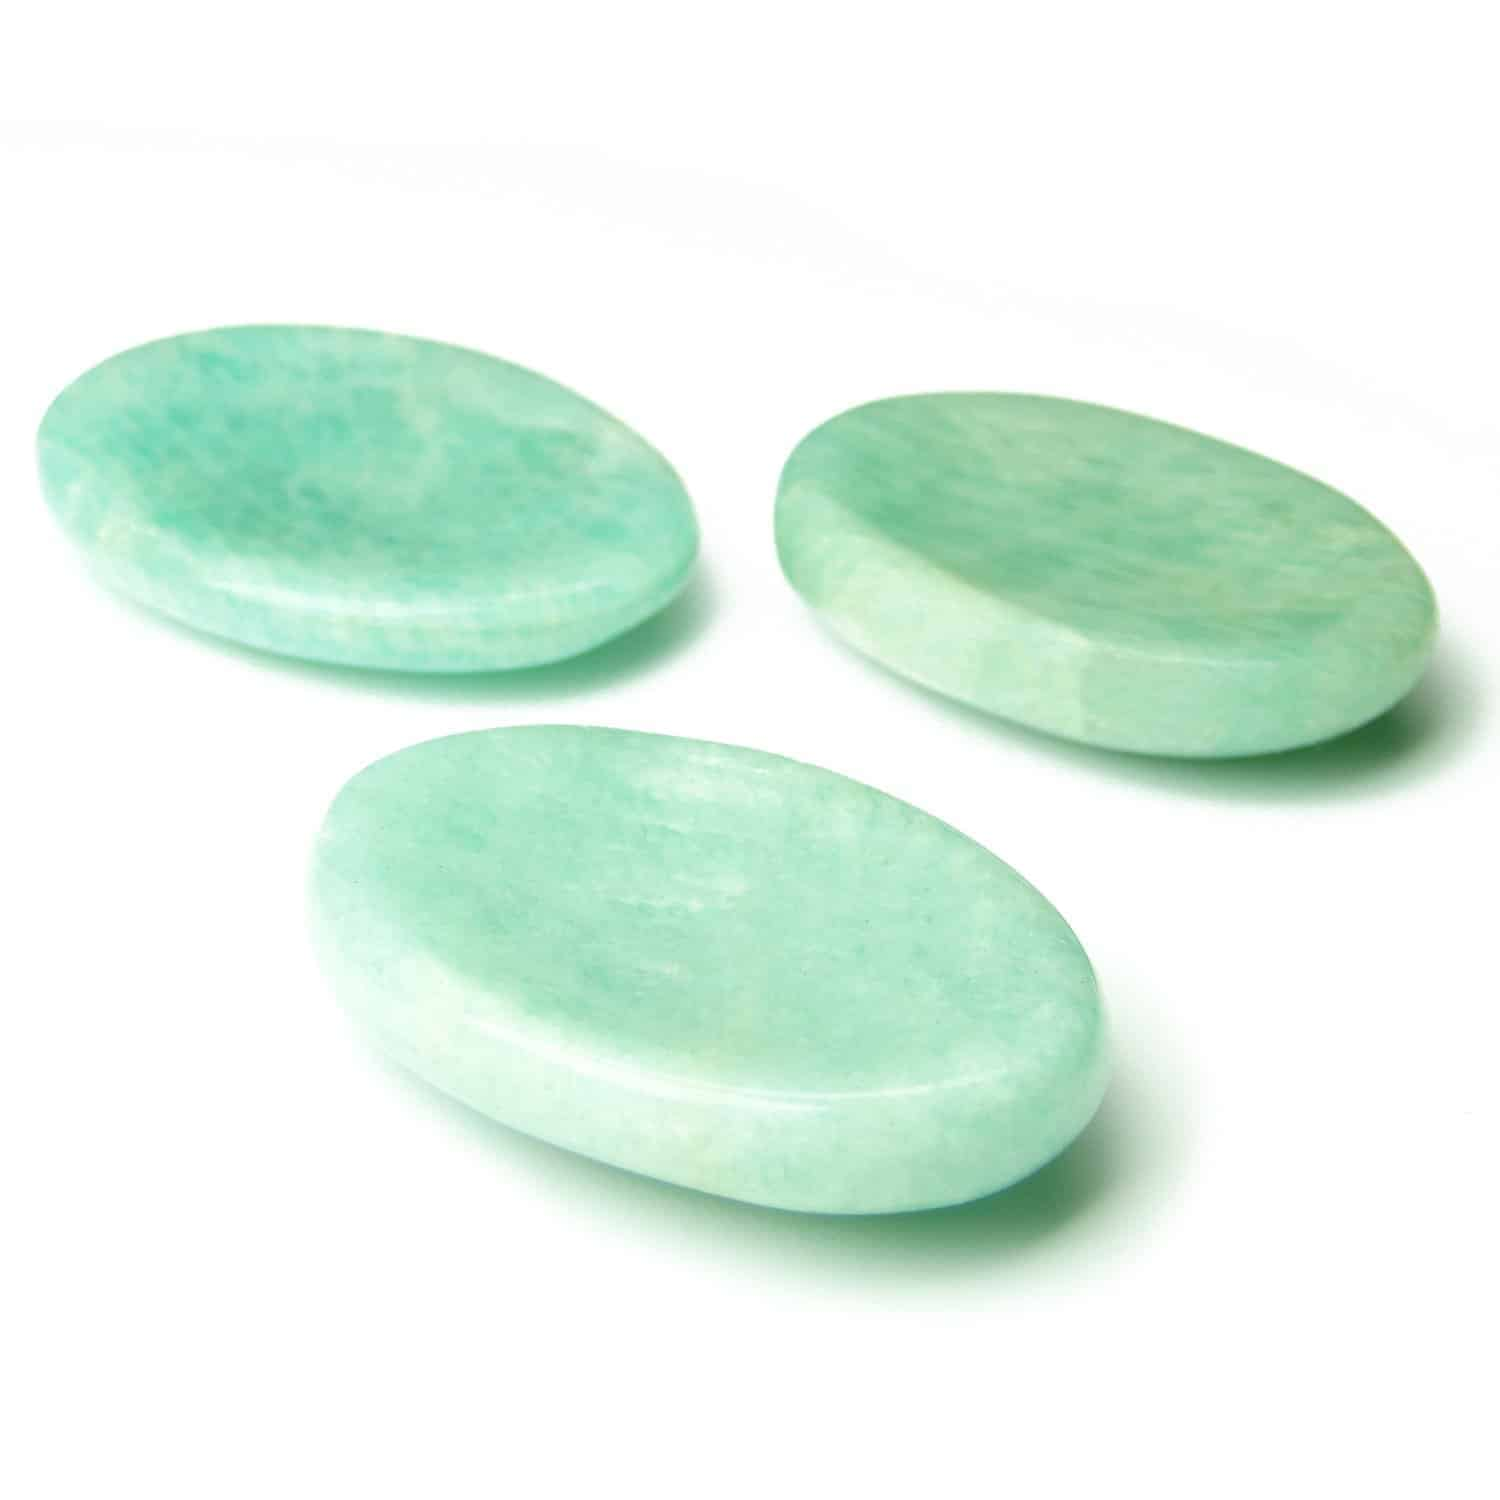 Amazonite Worry Stone Palm Stone Thumb Stone Nature's Crest WS0001 ₹ 269.00